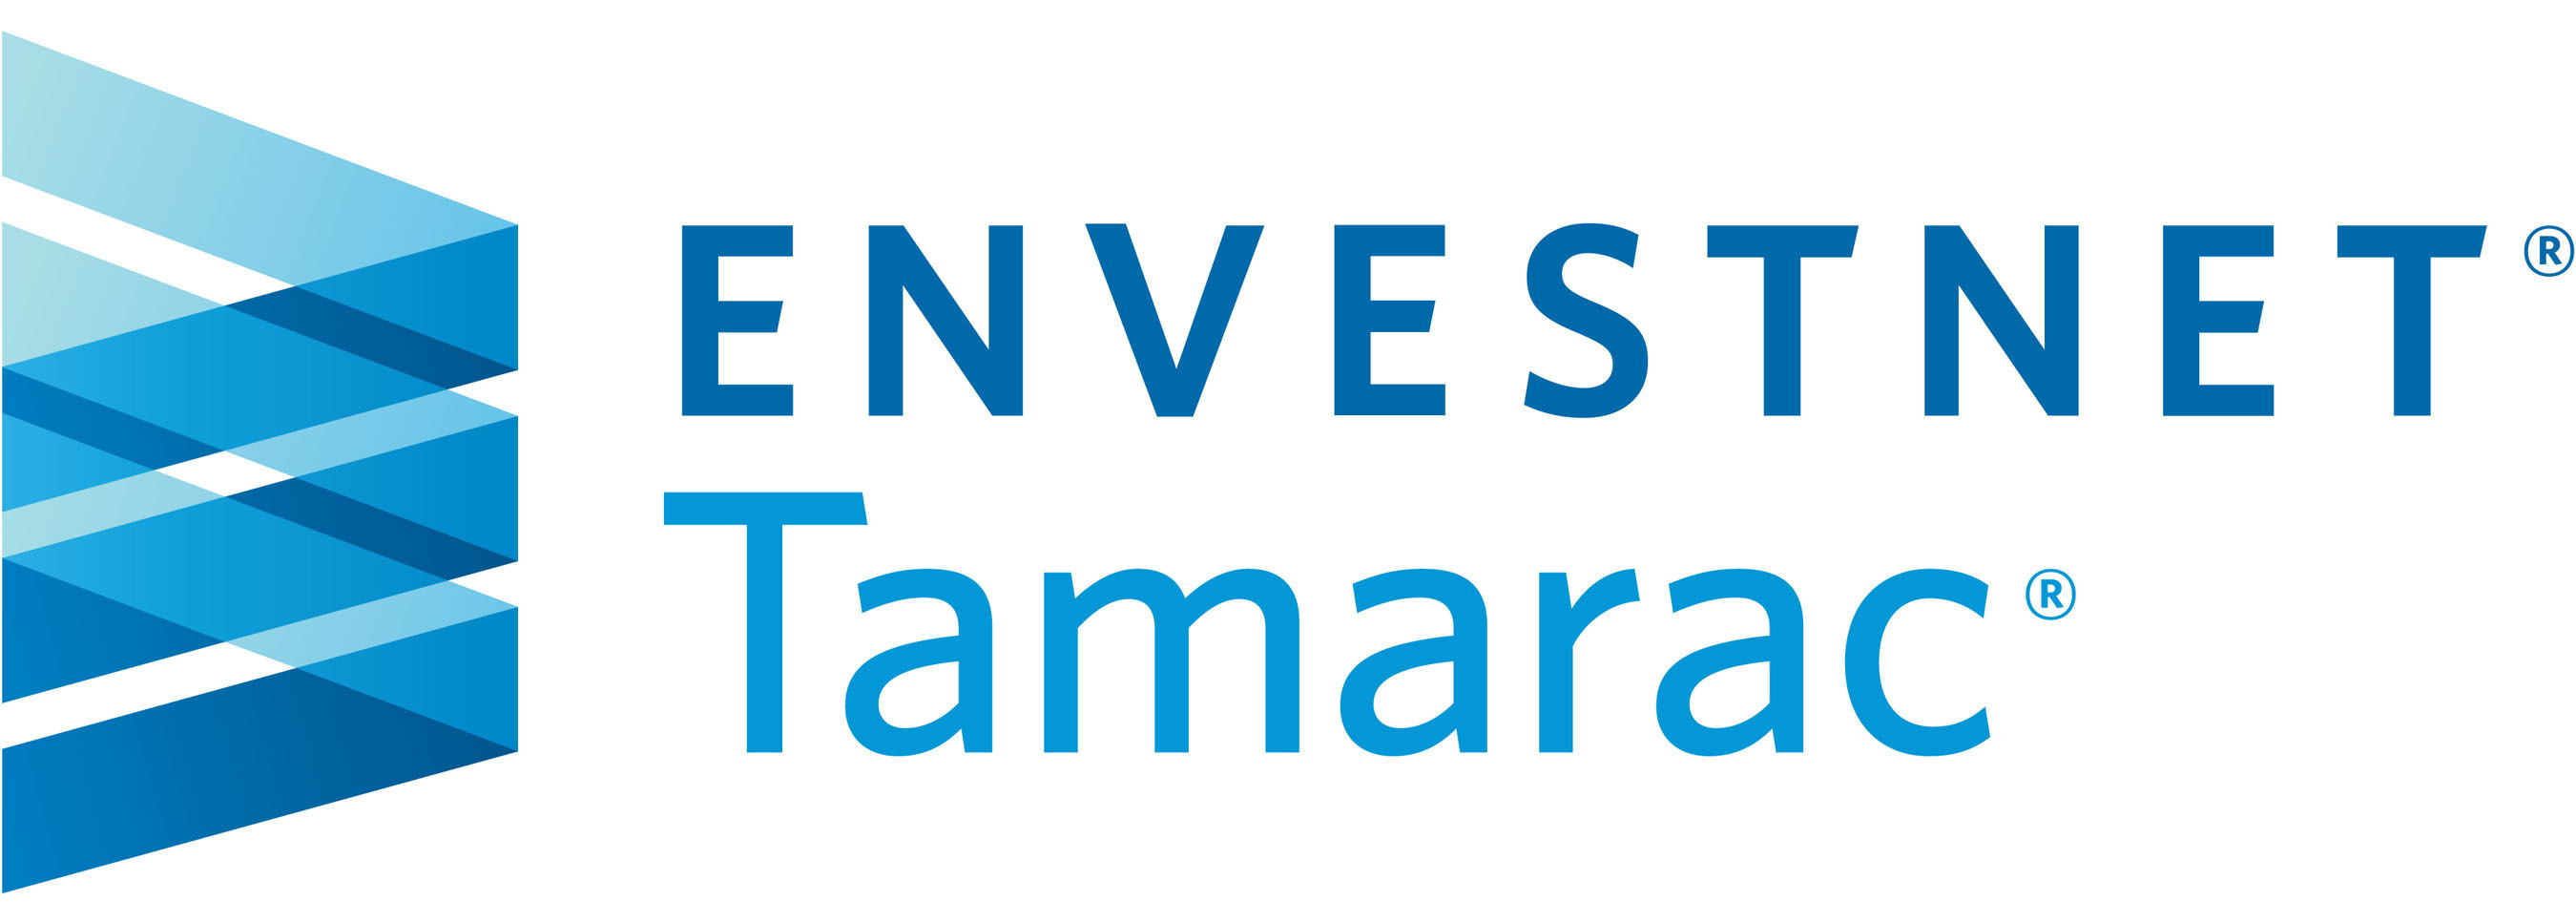 Envestnet Tamarac's web-based platform for independent RIAs, Advisor Xi, deeply unifies portfolio ...